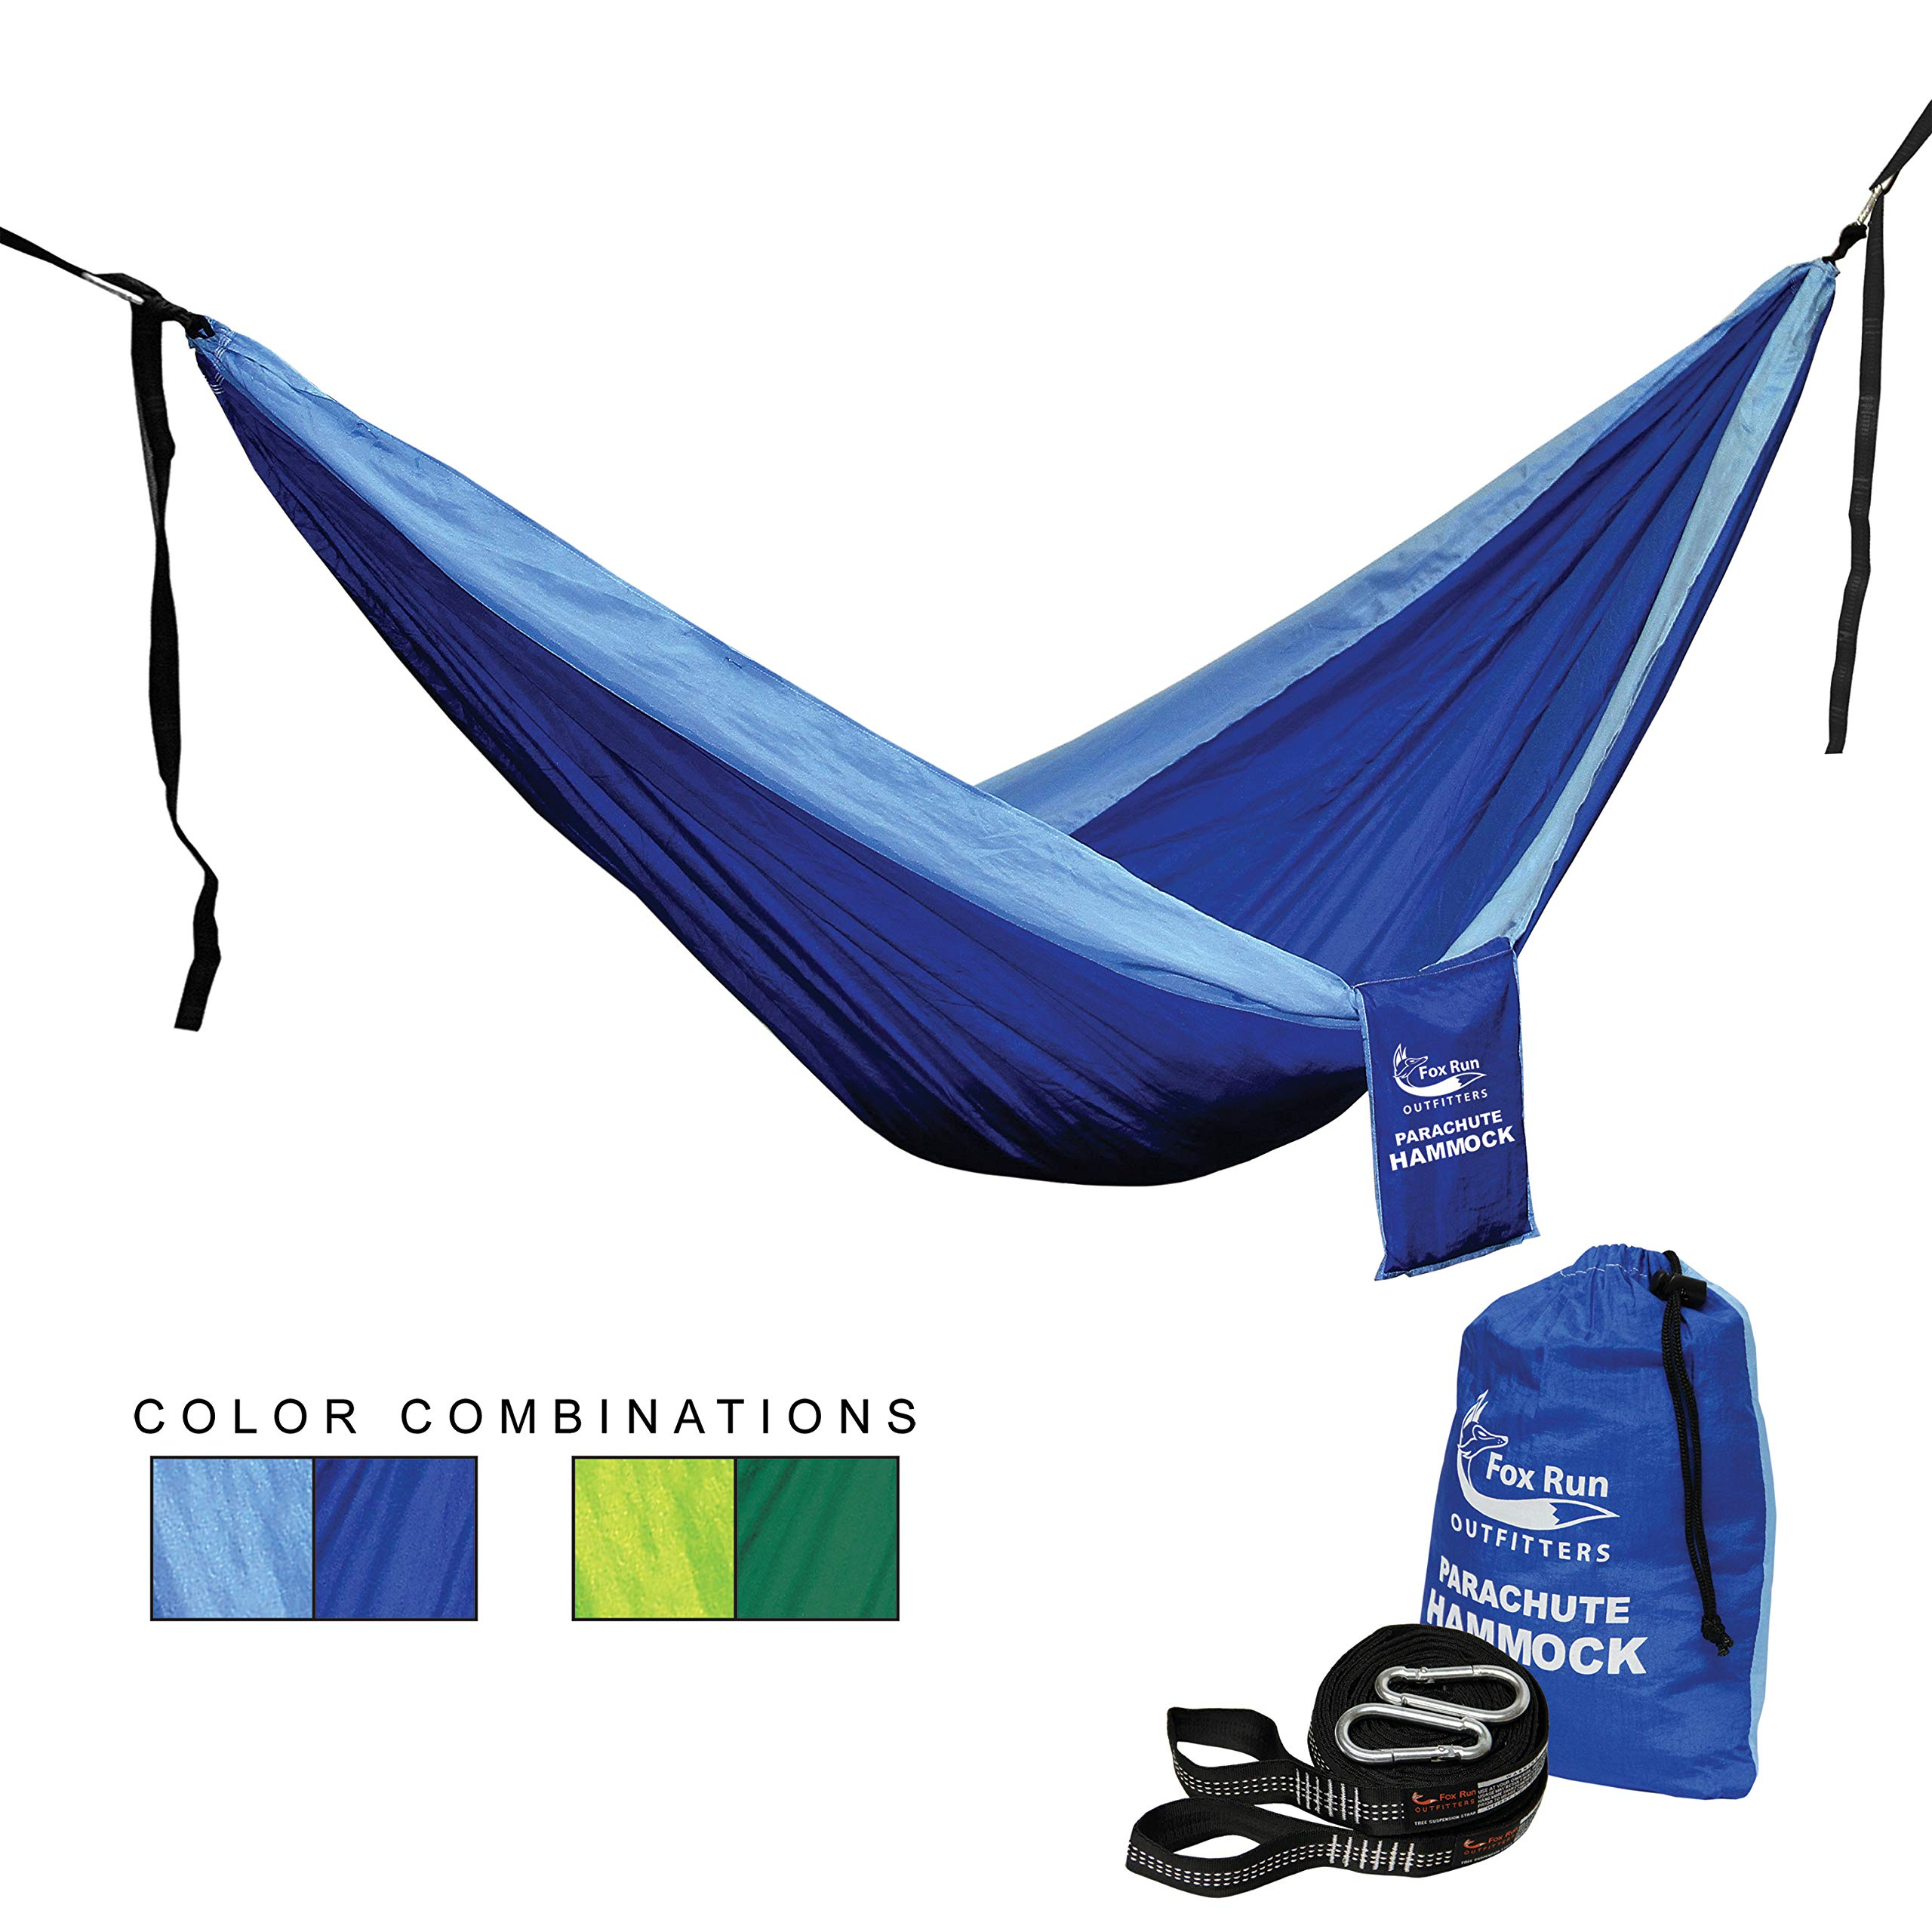 Single or Double Parachute Hammock – SLEEP LIKE A BABY Lightweight for Camping, Hiking, Backpacking, Backyard Adventures - FREE HANGING STRAPS - by Fox Run Outfitters by Fox Run Outfitters